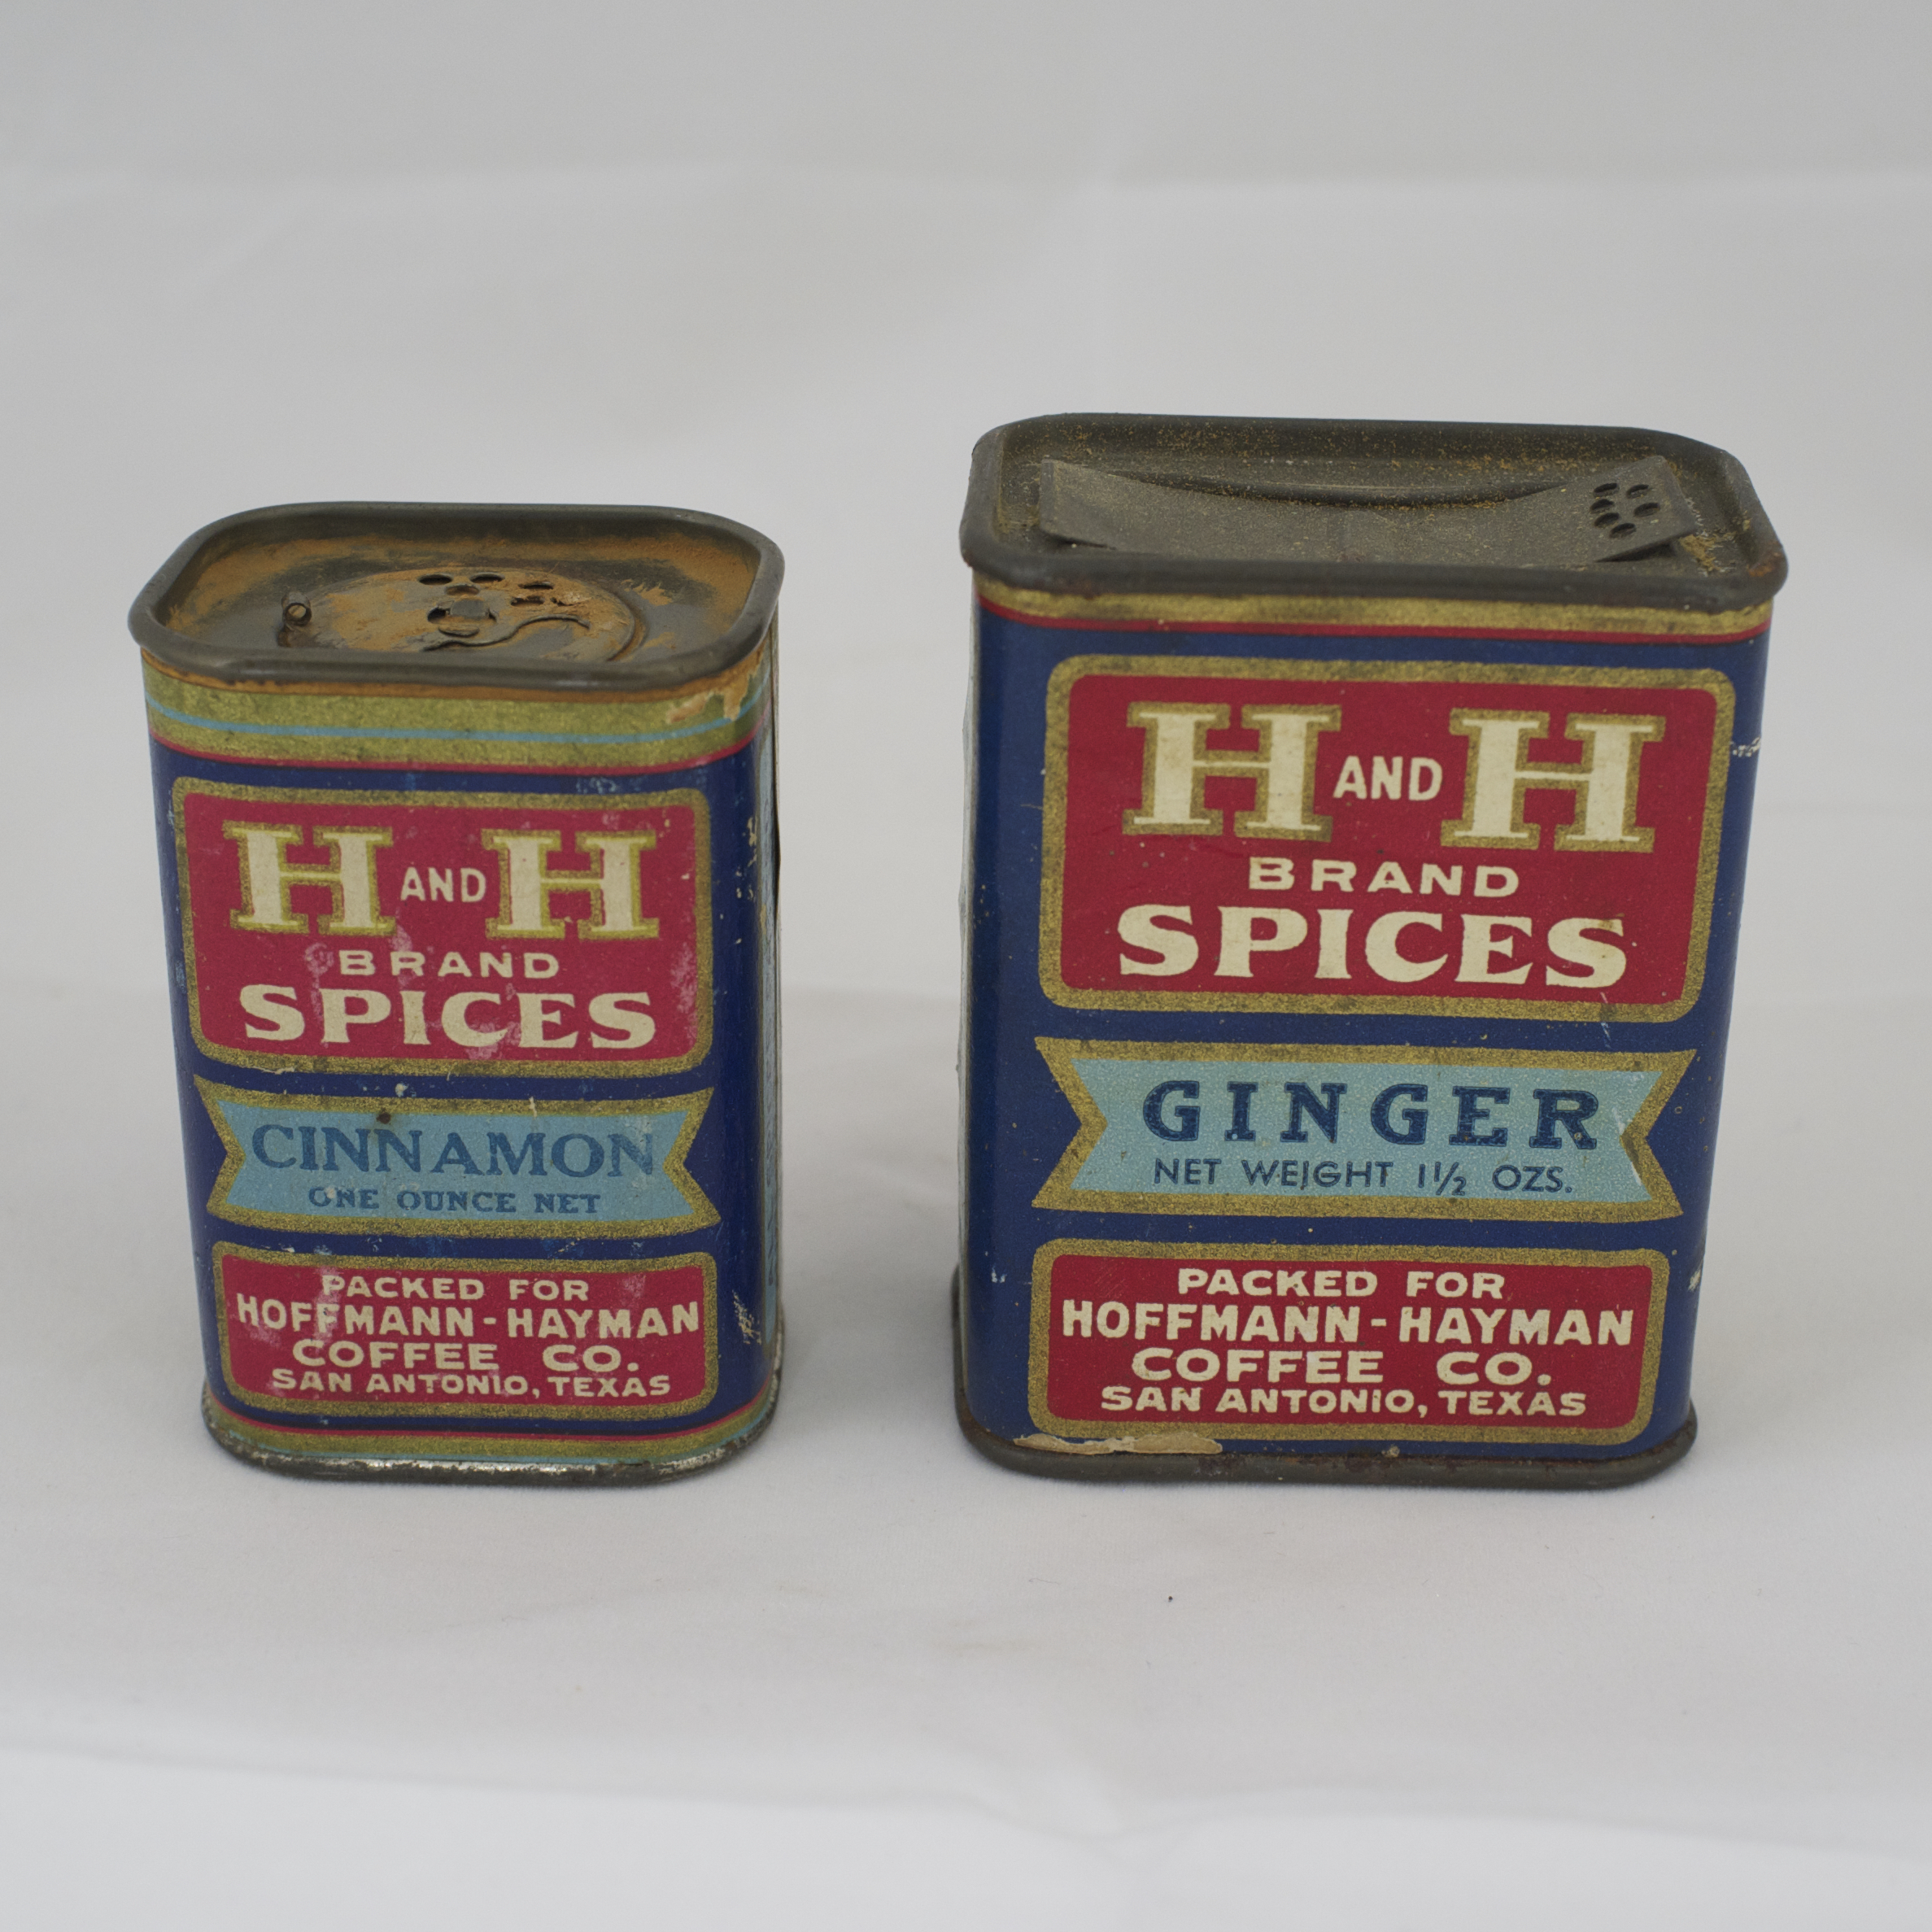 H and H Spices - Cinnamon 1oz, Ginger 1.5oz